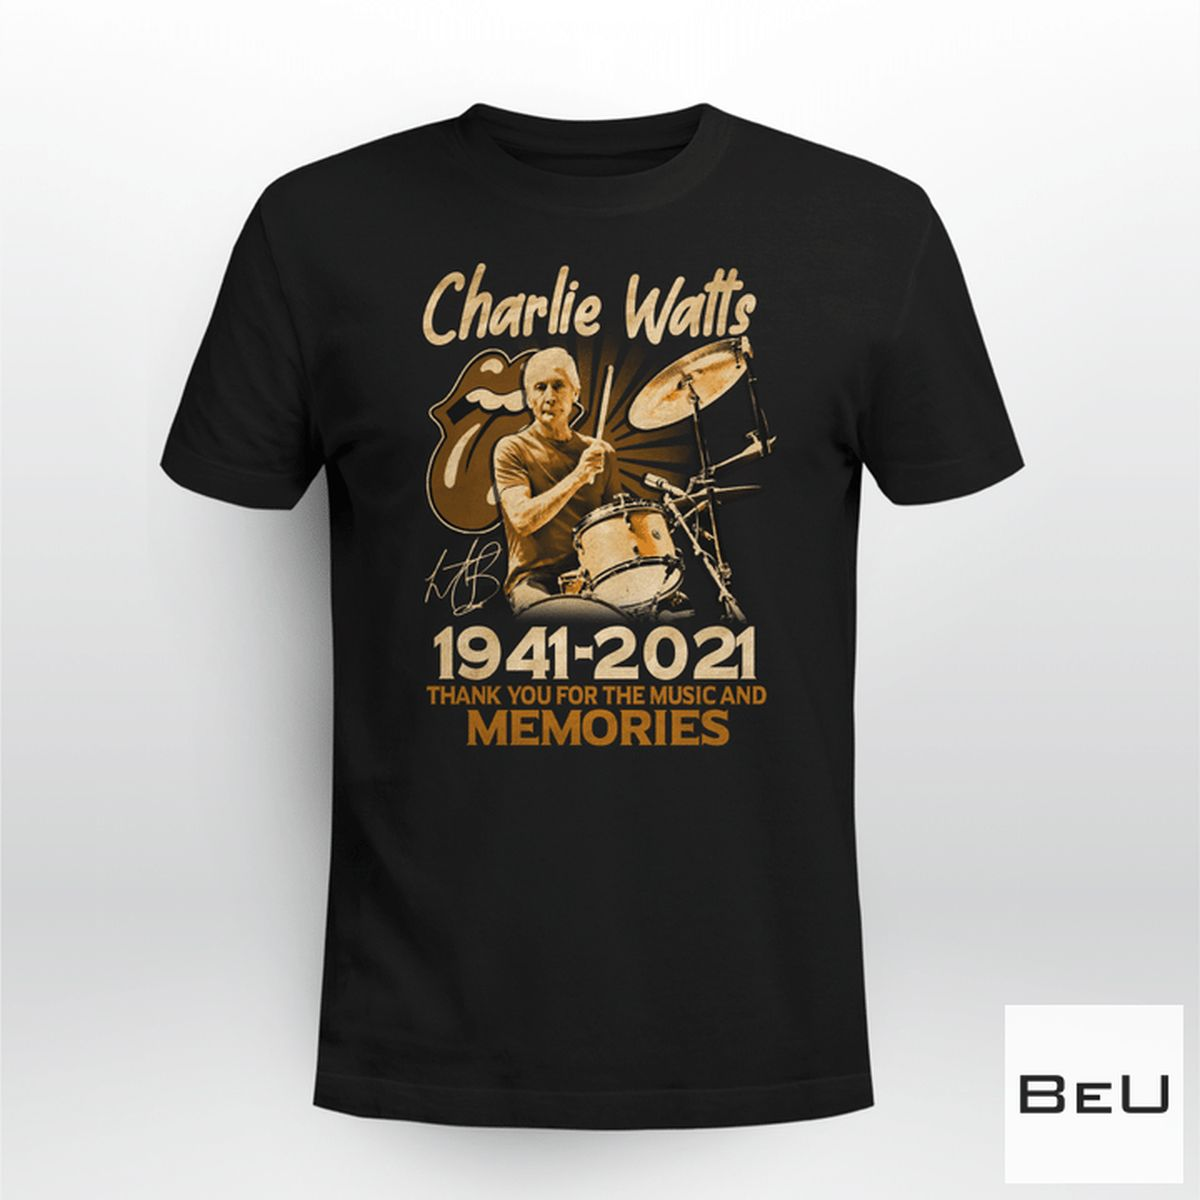 Charlie Watts 1941-2021 Thank You For The Music And Memories Shirt